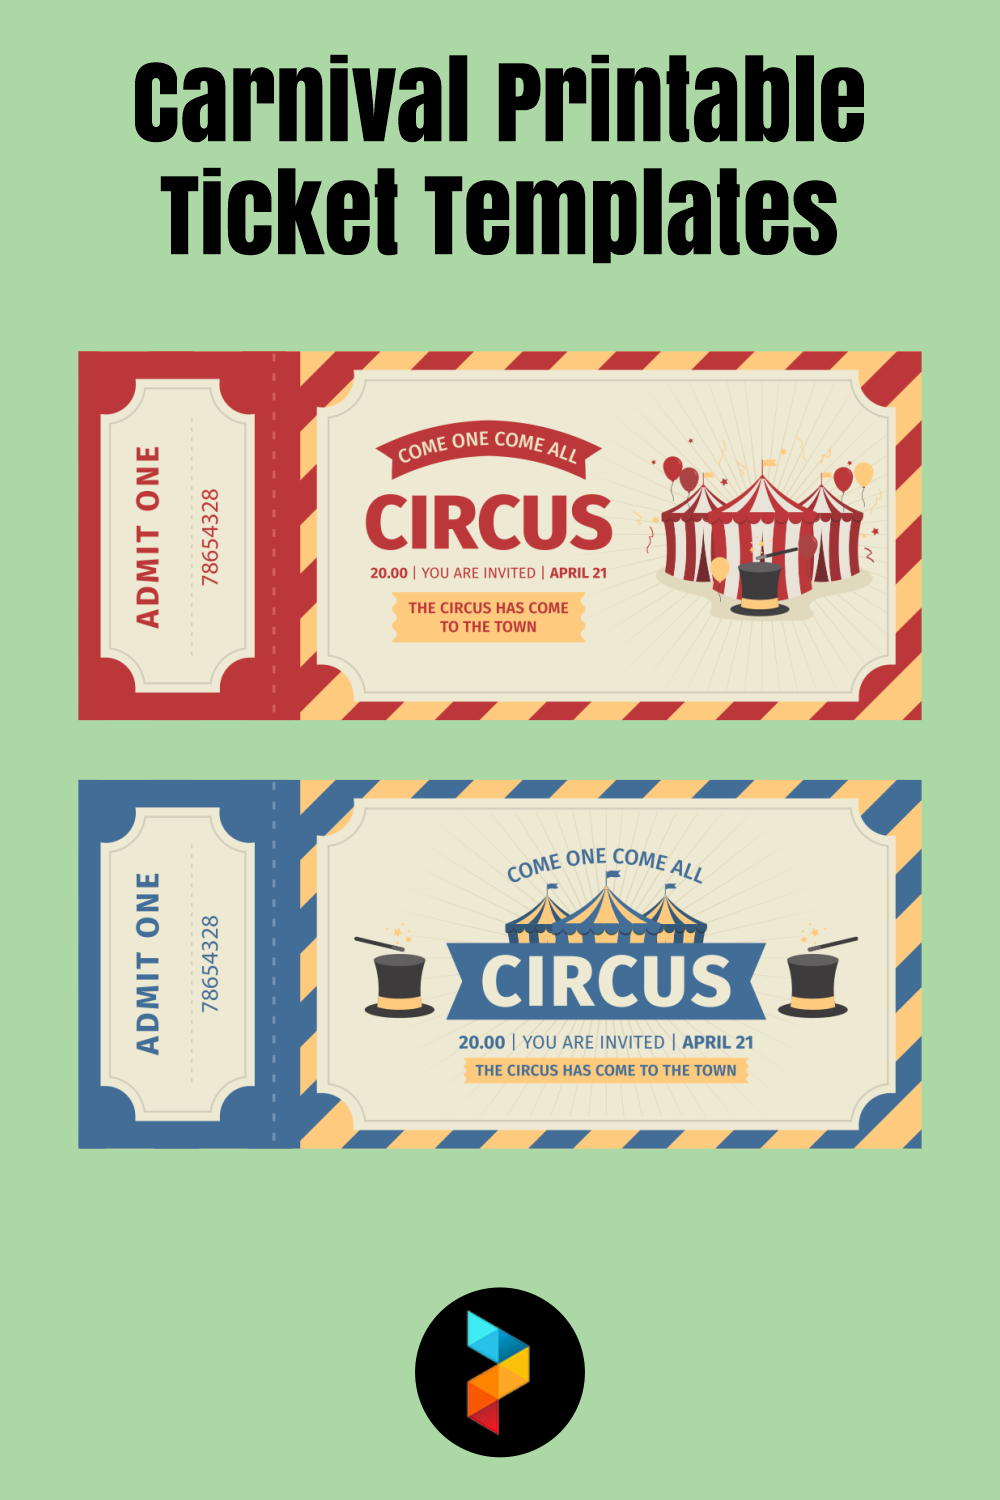 Carnival Printable Ticket Templates